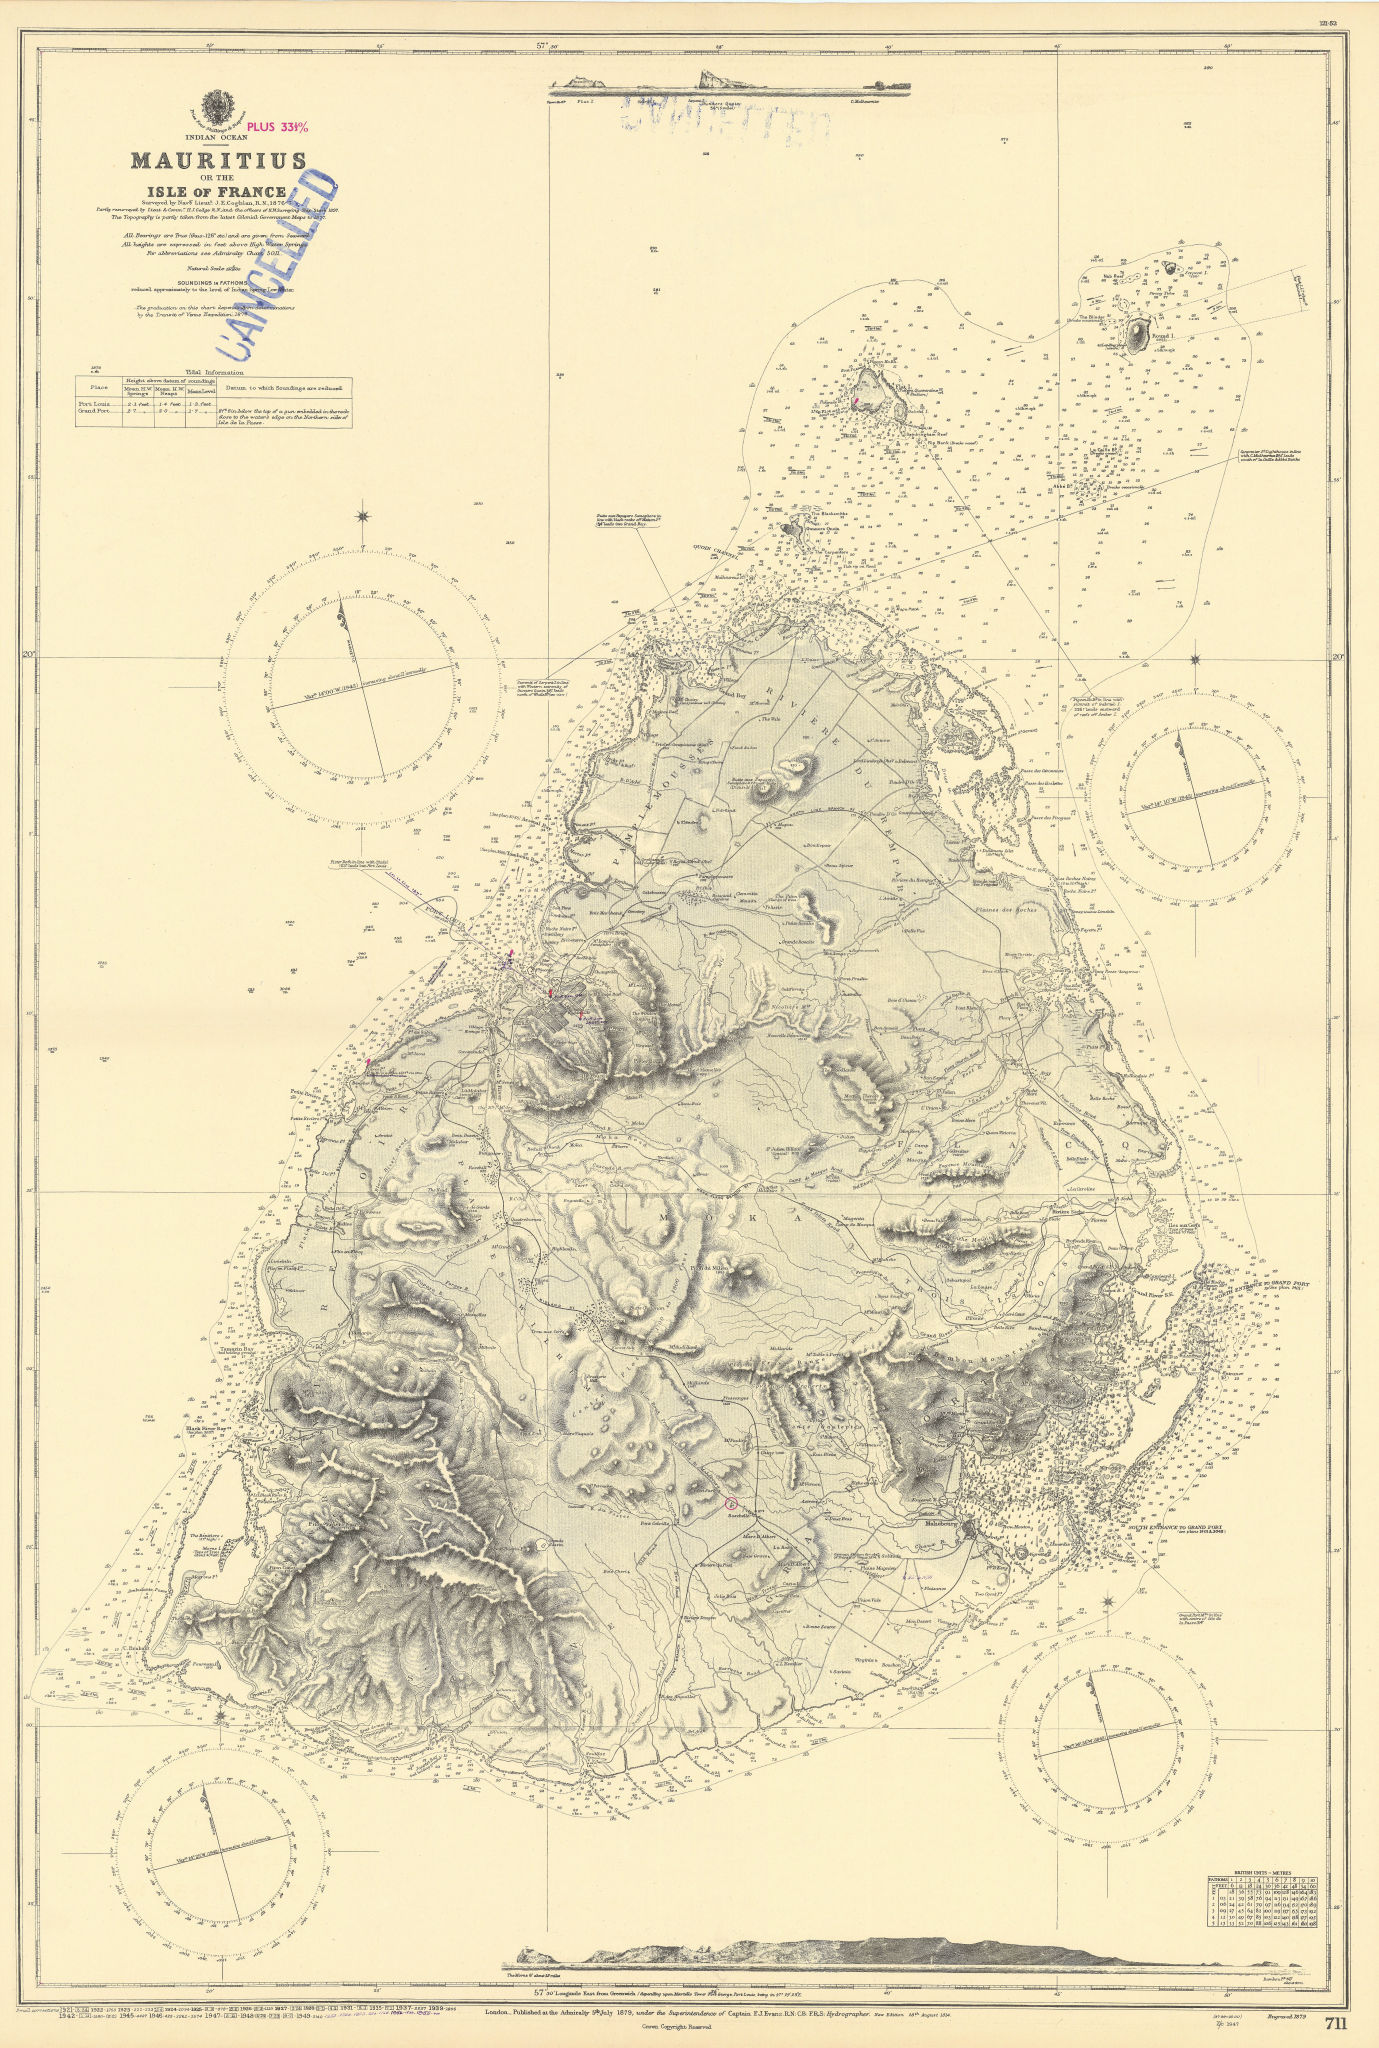 Mauritius or Isle of France, Indian Ocean. ADMIRALTY sea chart 1879 (1955) map